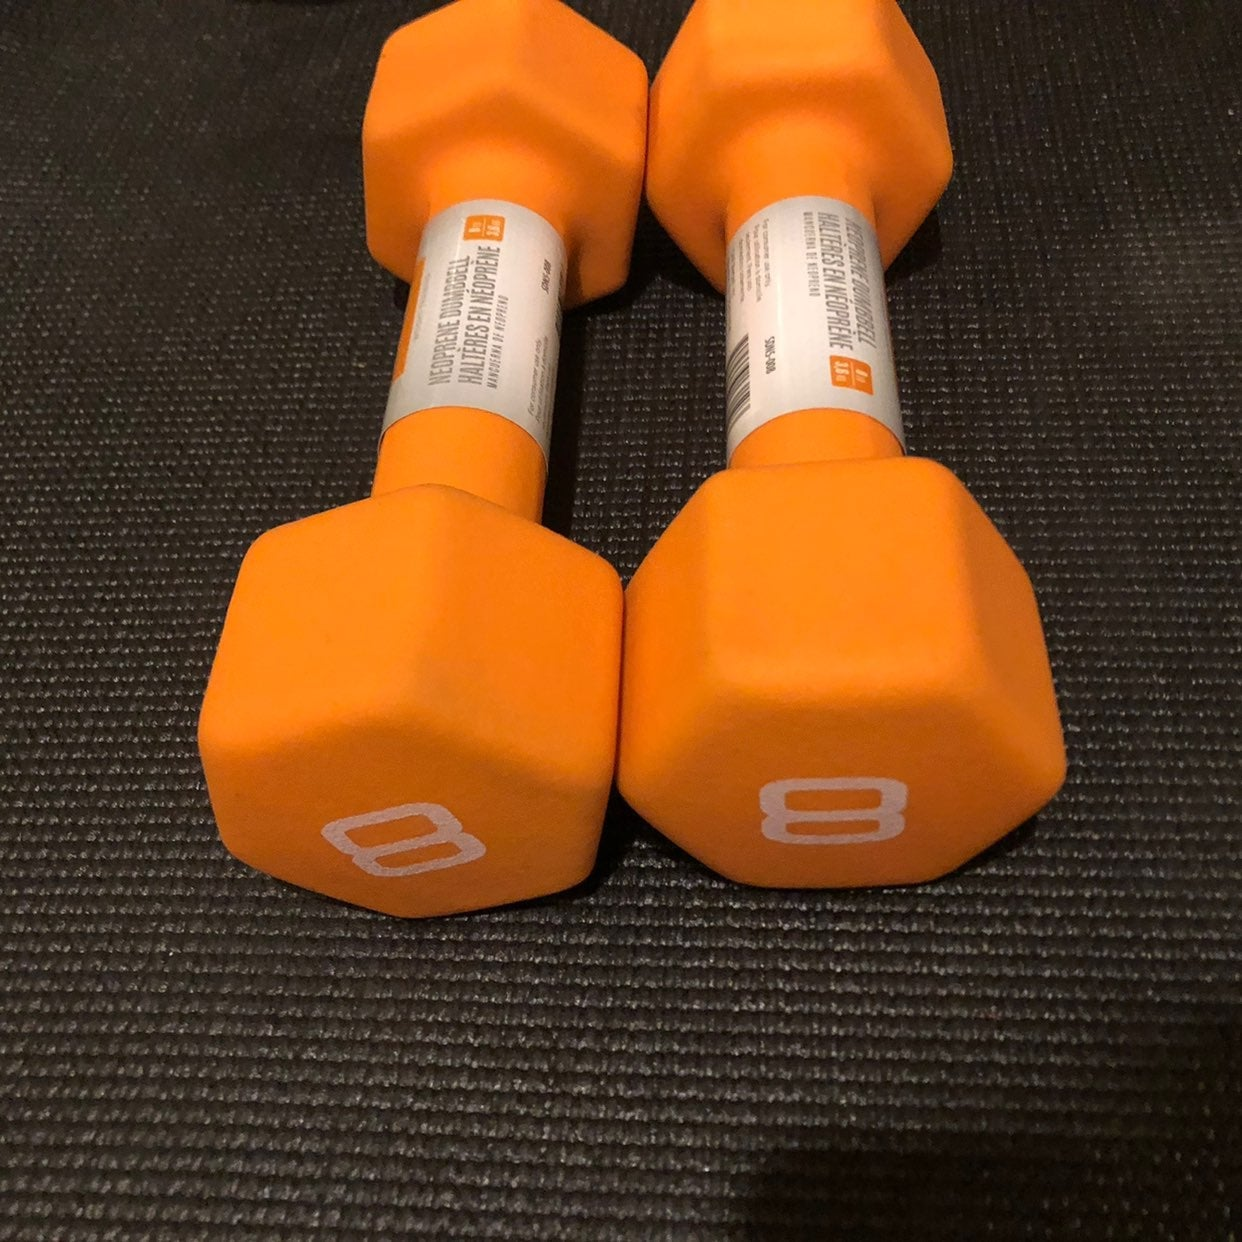 8Lbs dumbbell set (x2) 16 lbs total